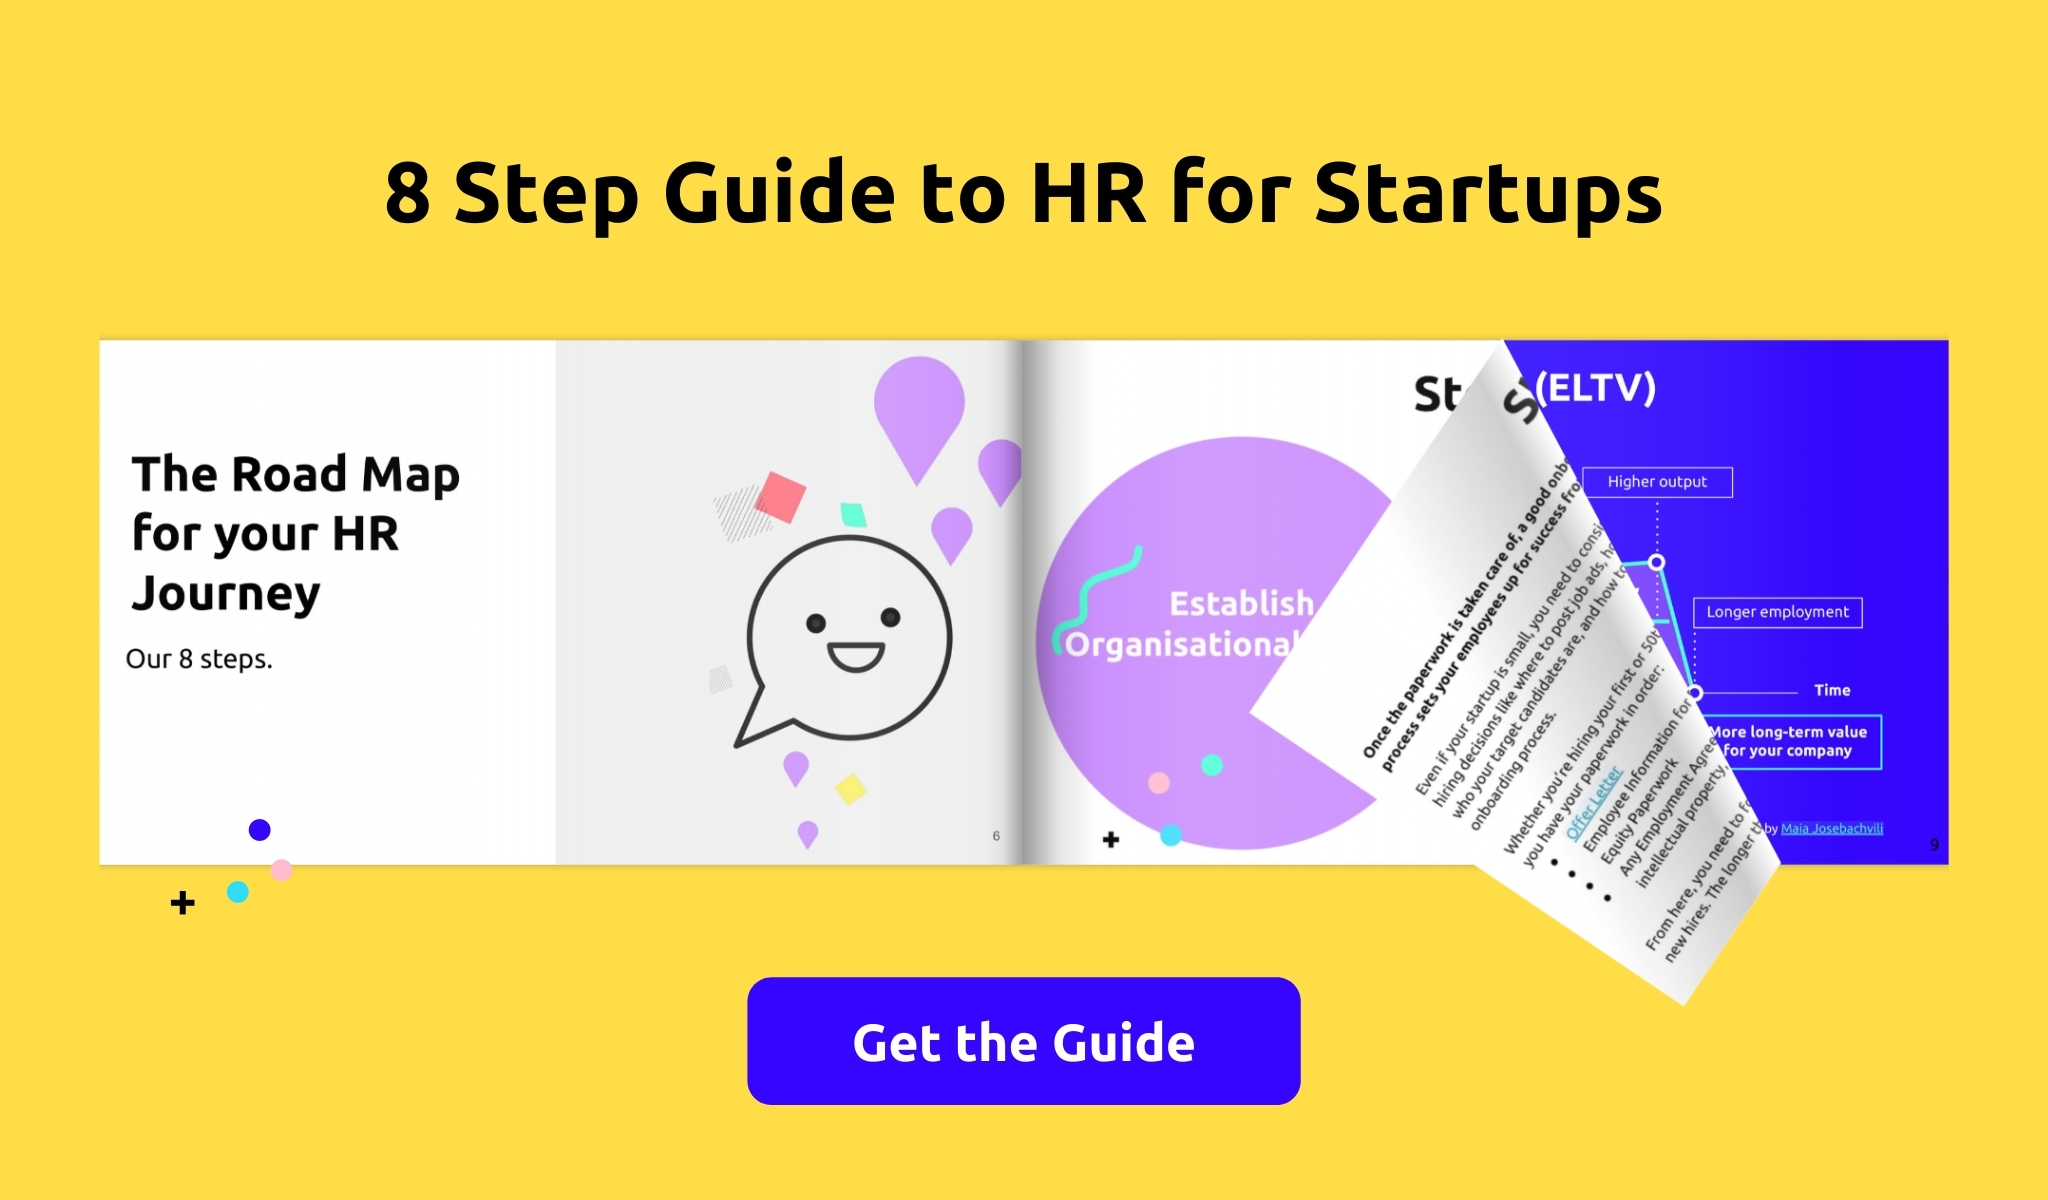 8-Step Guide to HR for Startups